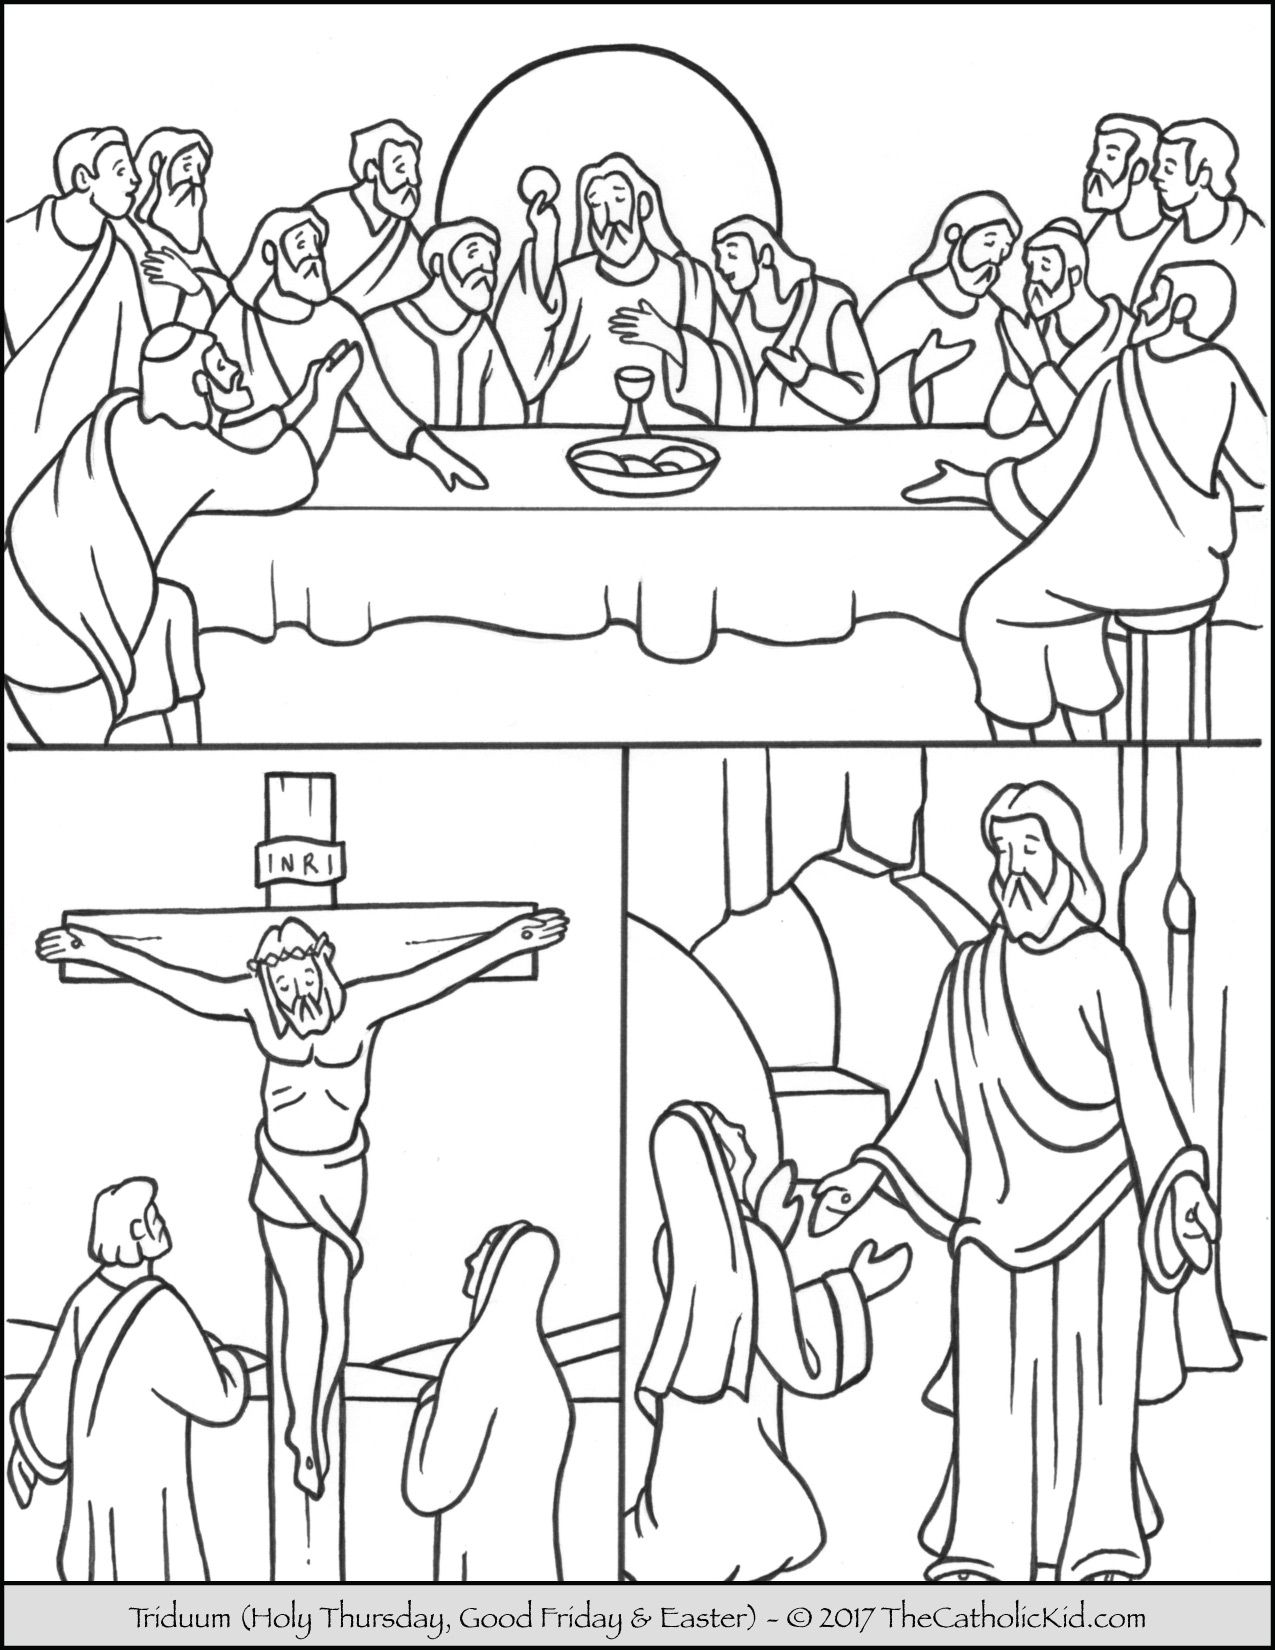 Easter Triduum Coloring Page Sunday School Coloring Pages